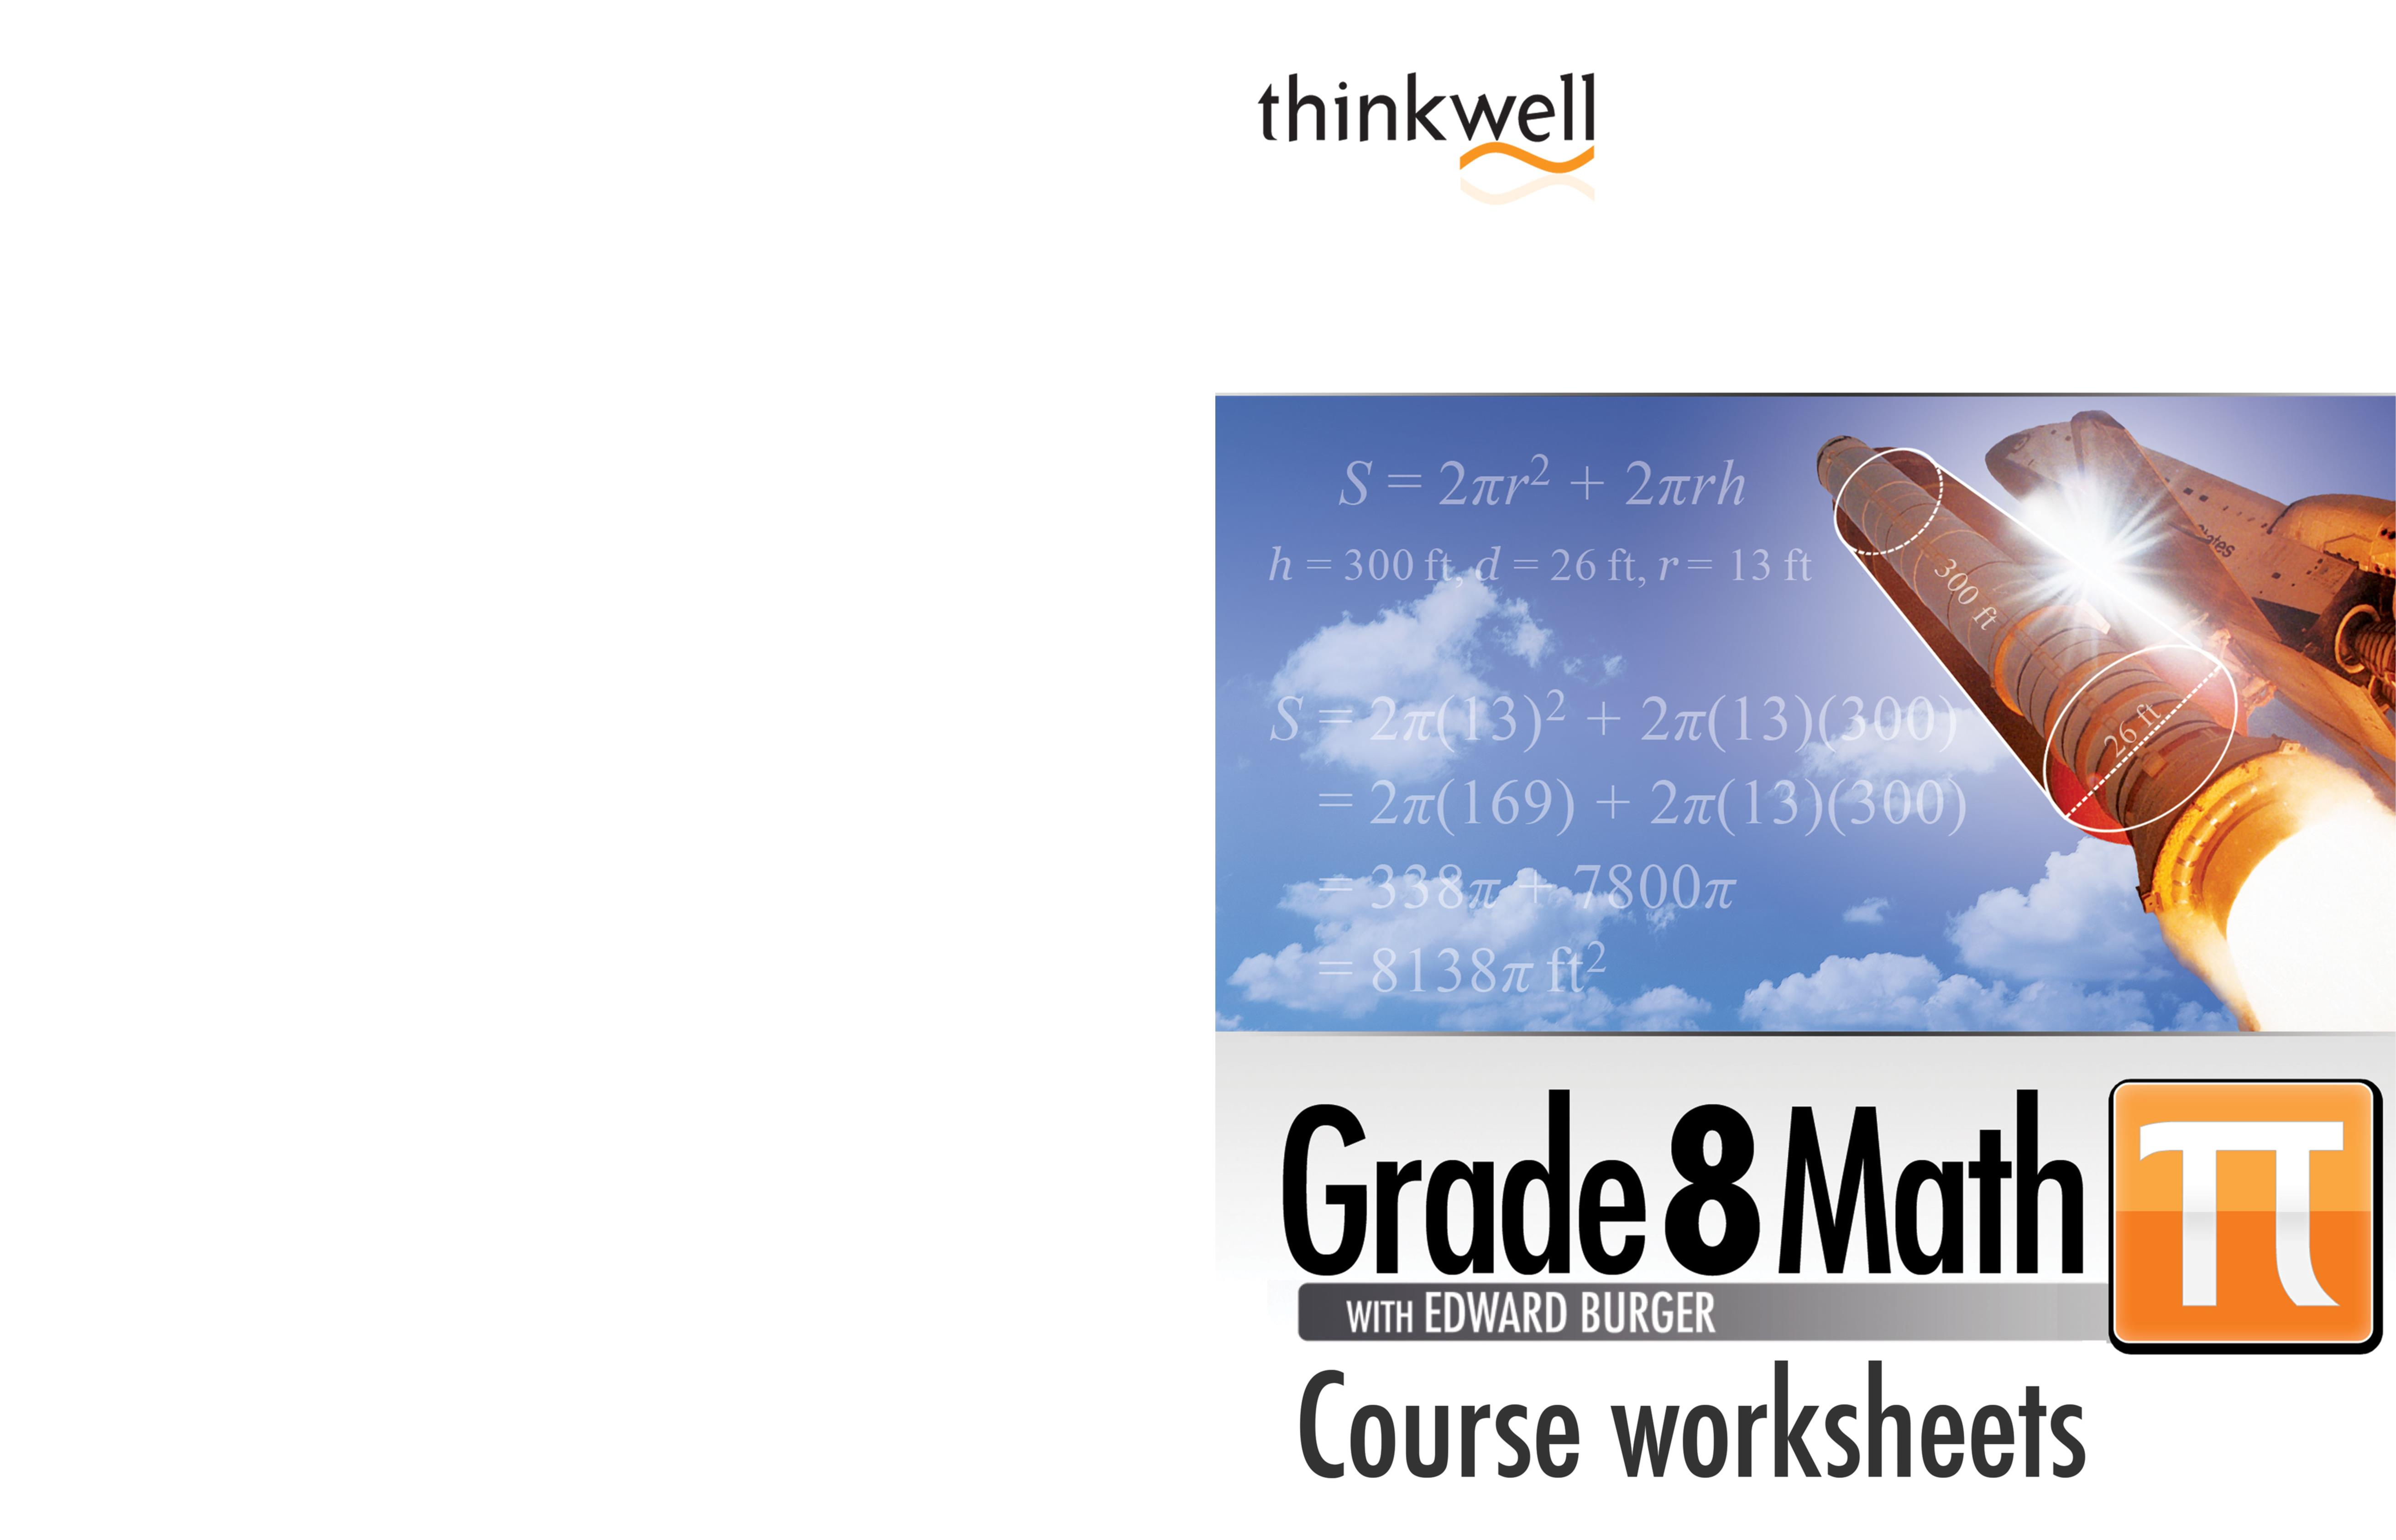 Thinkwell Grade 8 Math Worksheets And Answer Keys By